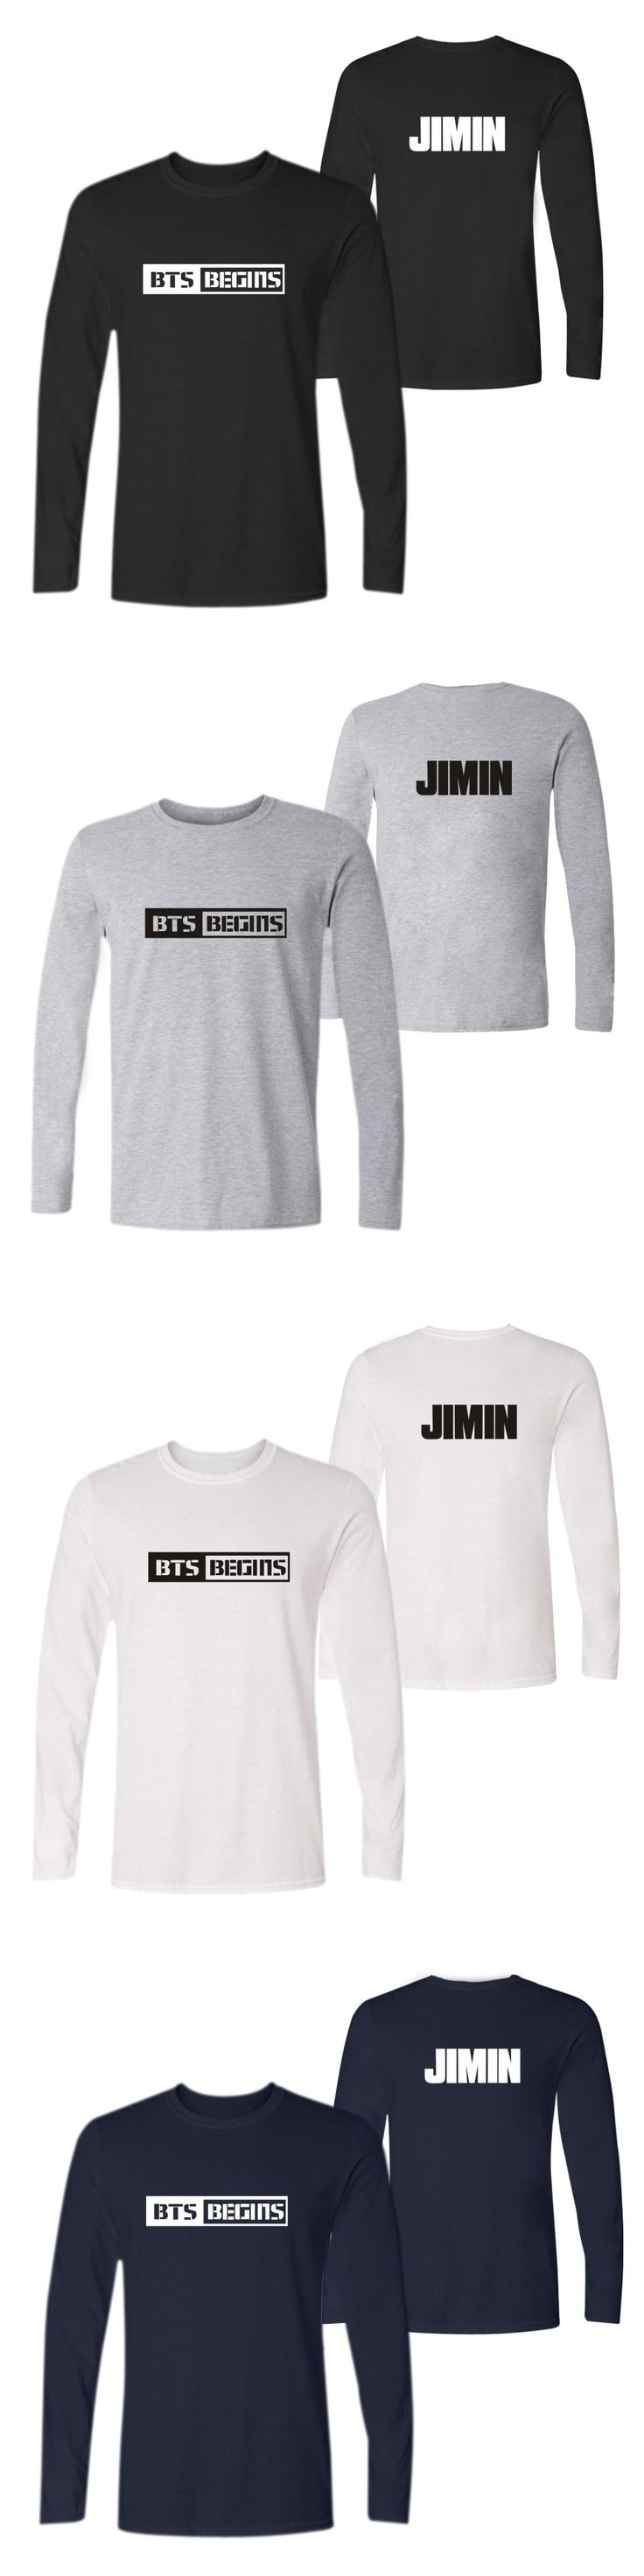 2016 Unisex BTS T-Shirts Slim Number Letter Print Black t shirt Women Tops 2016 Long Sleeve Casual Tees Clothing ropa mujer